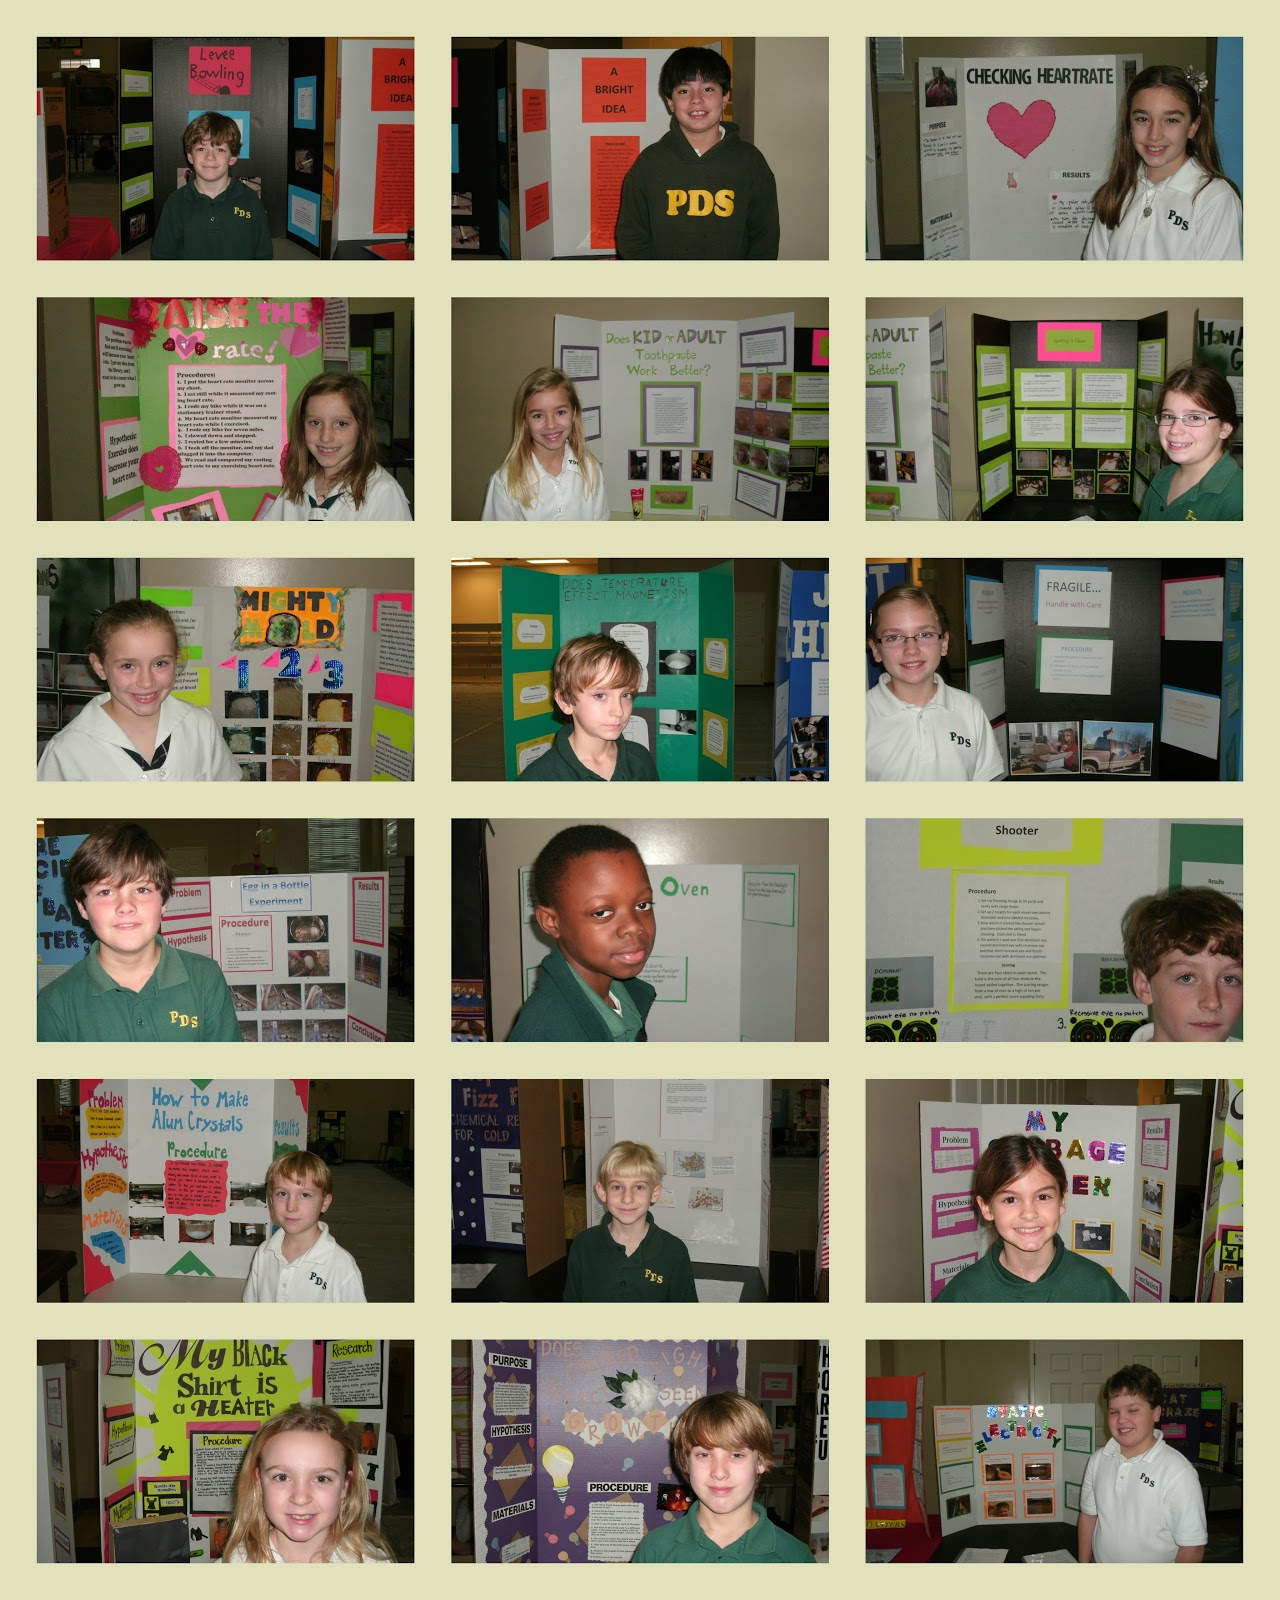 4th grade science fair projects for girls Making 4th graders experiment with quick and easy science projects is an excellent way of teaching kids complex concepts in a novel way  easy science projects for 4th graders #1:  7th grade science fair projects for girls 5th grade science fair project ideas solar system project ideas for kids how are waterfalls formed albert einstein's inventions.